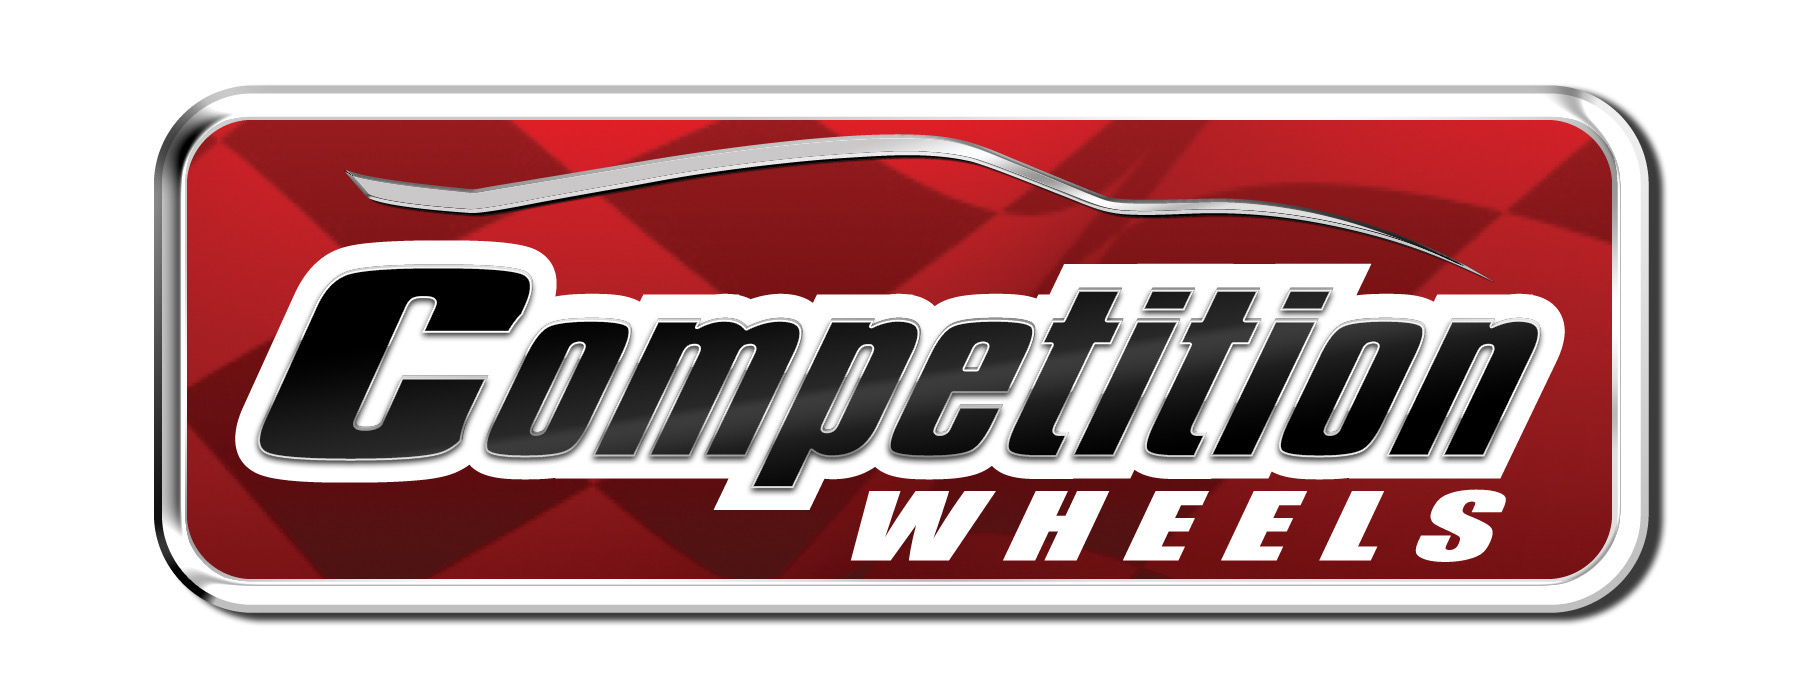 Competition Wheels logo